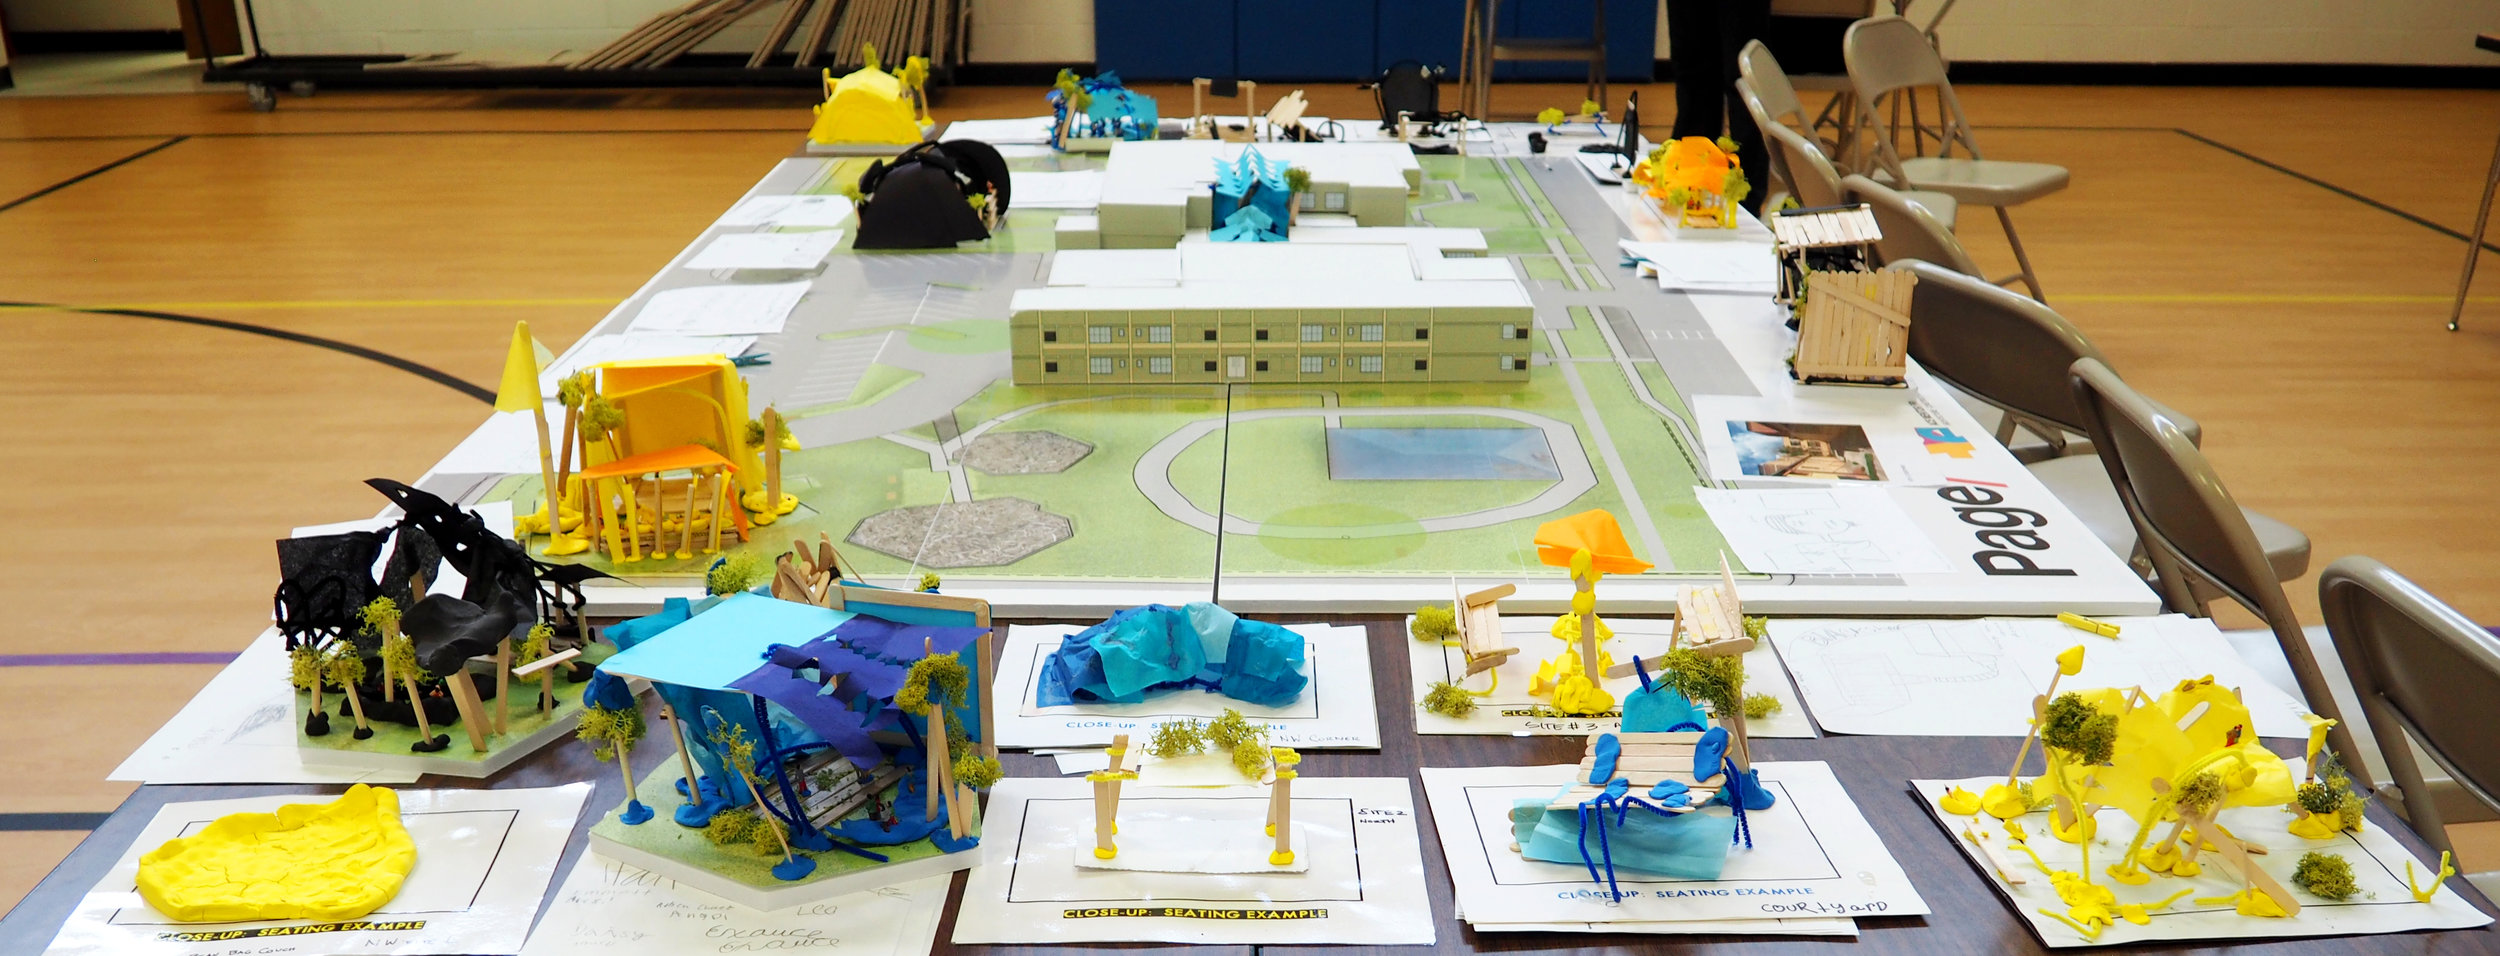 Blackshear students worked collaboratively in teams to propose solutions to stage, seating, and shade. Alterstudio and Page architects created a scaled foamcore model of the schoolyard to help students envision their solutions in place.